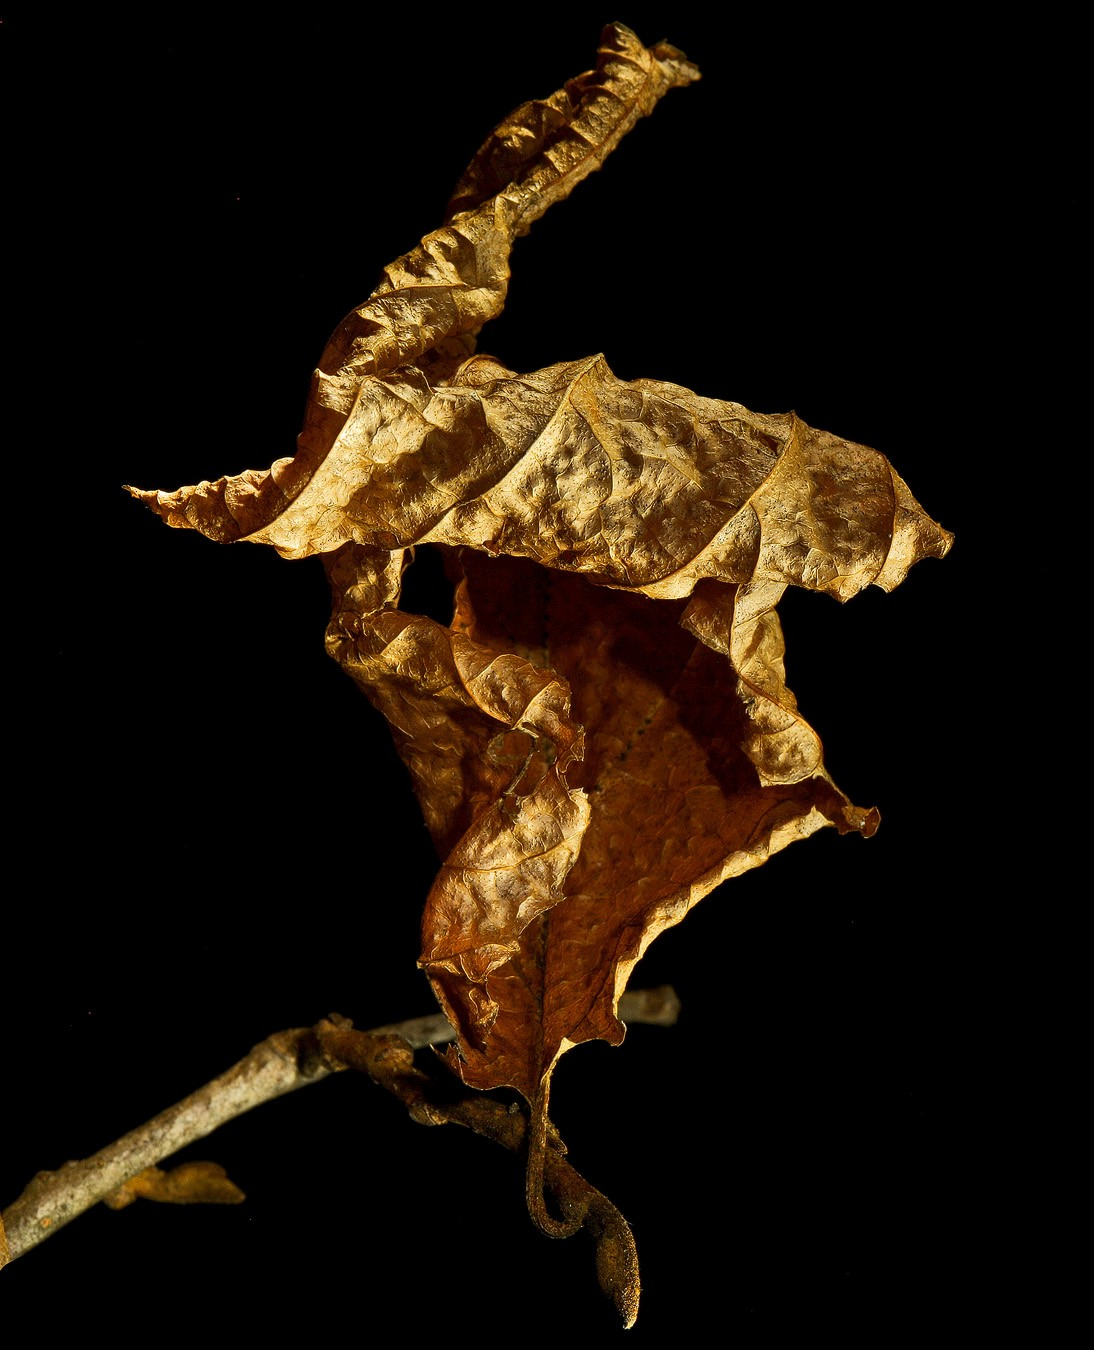 leaf monster img aw author sava gregory and veren verena